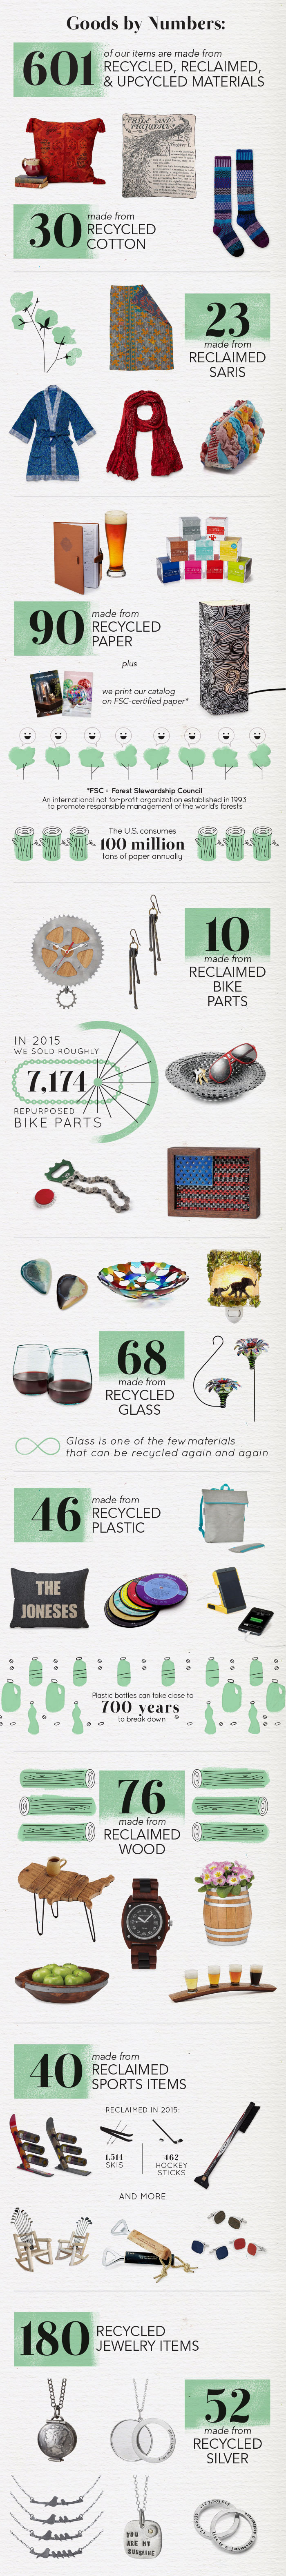 021616_recycled-items-infographic_blog